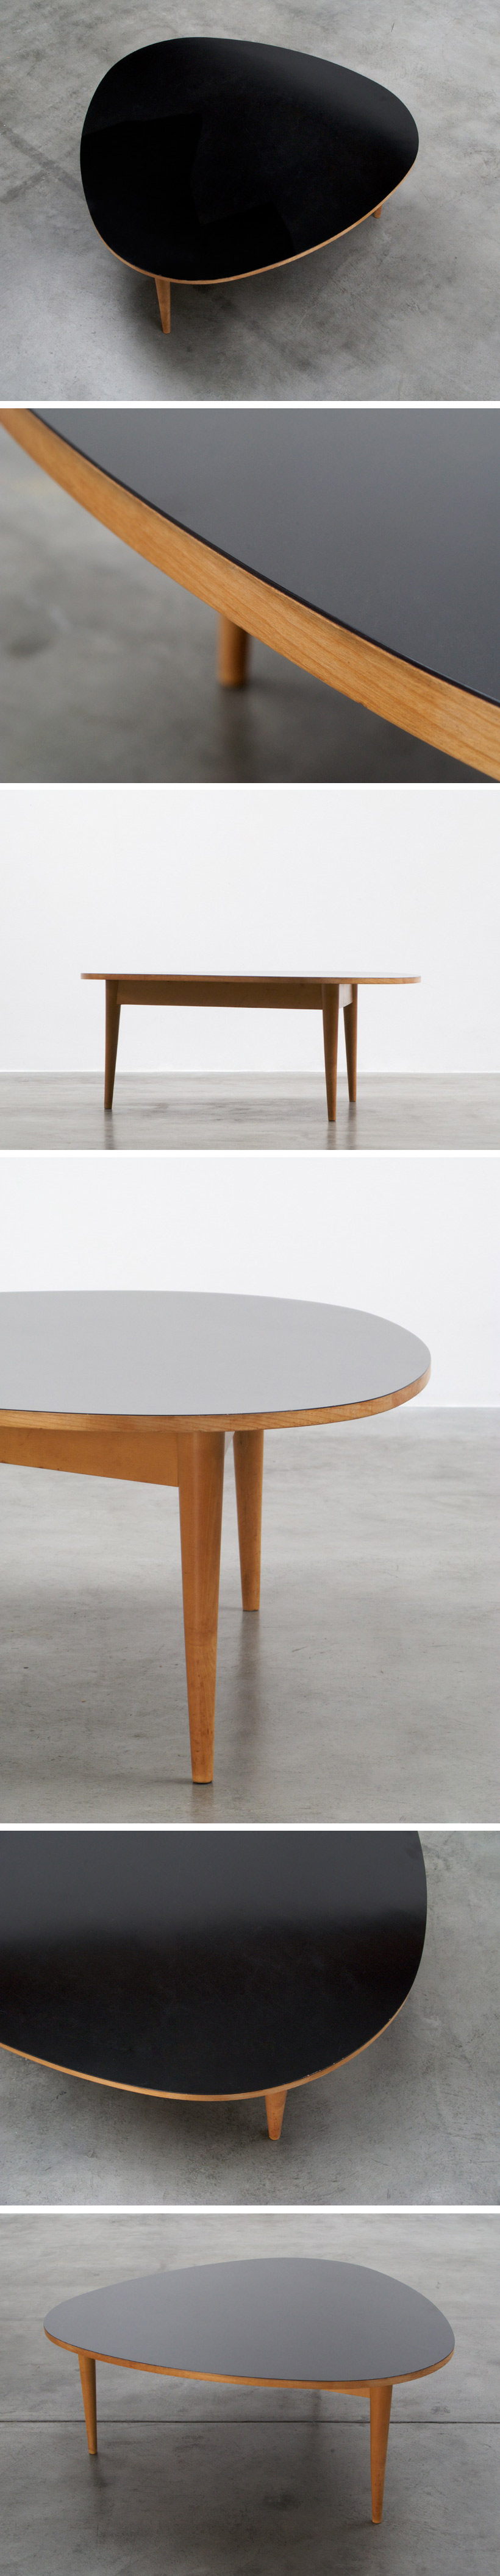 Max Bill Three-round coffee table Wohnbedarf AG Zurich Large